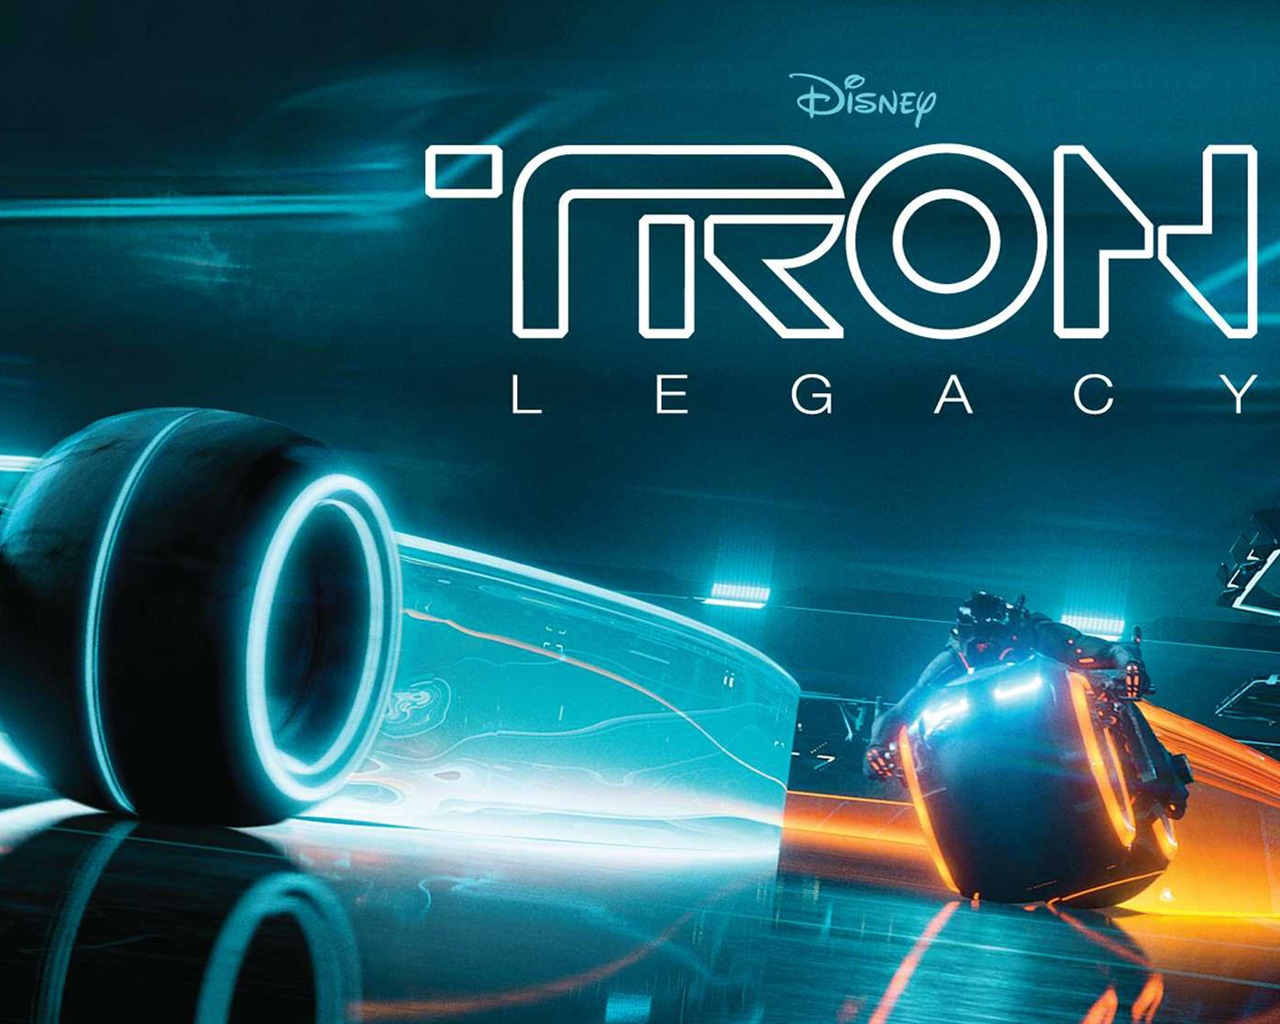 tron legacy hd wallpaper #10 - 1280x1024 wallpaper download - tron